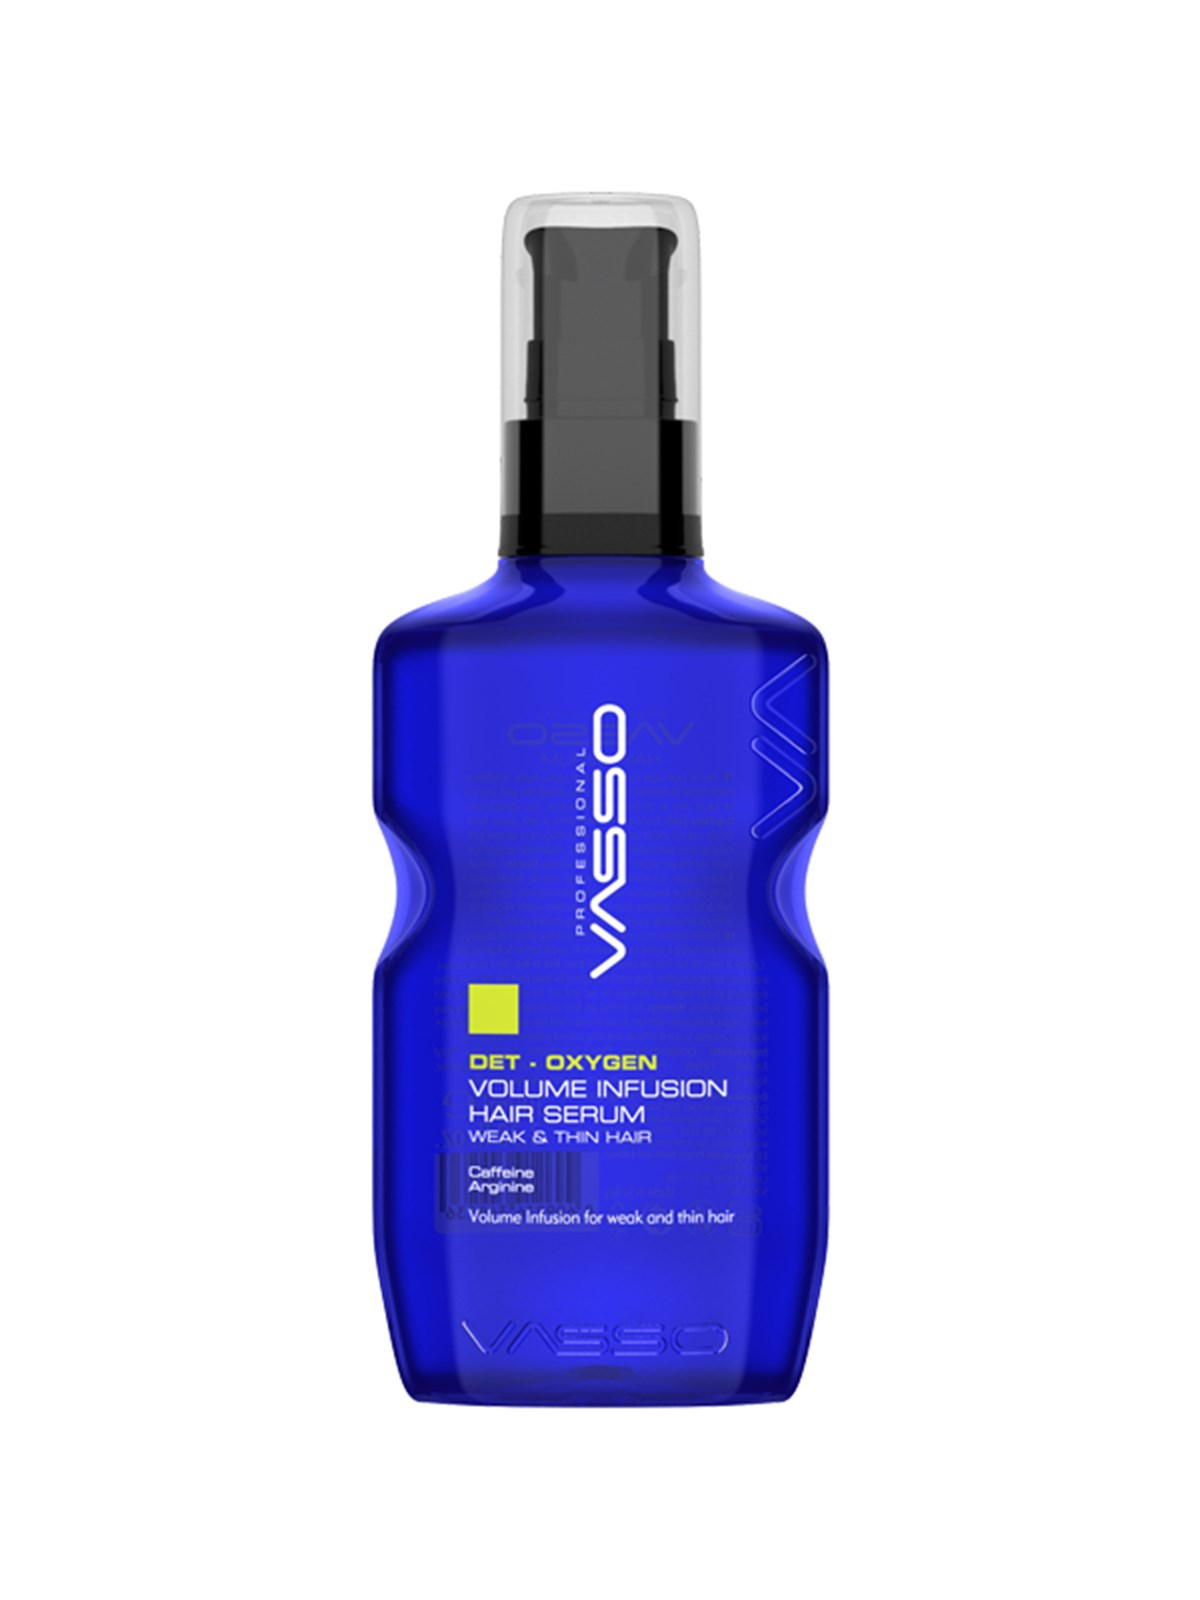 Volume Infusion Hair Serum